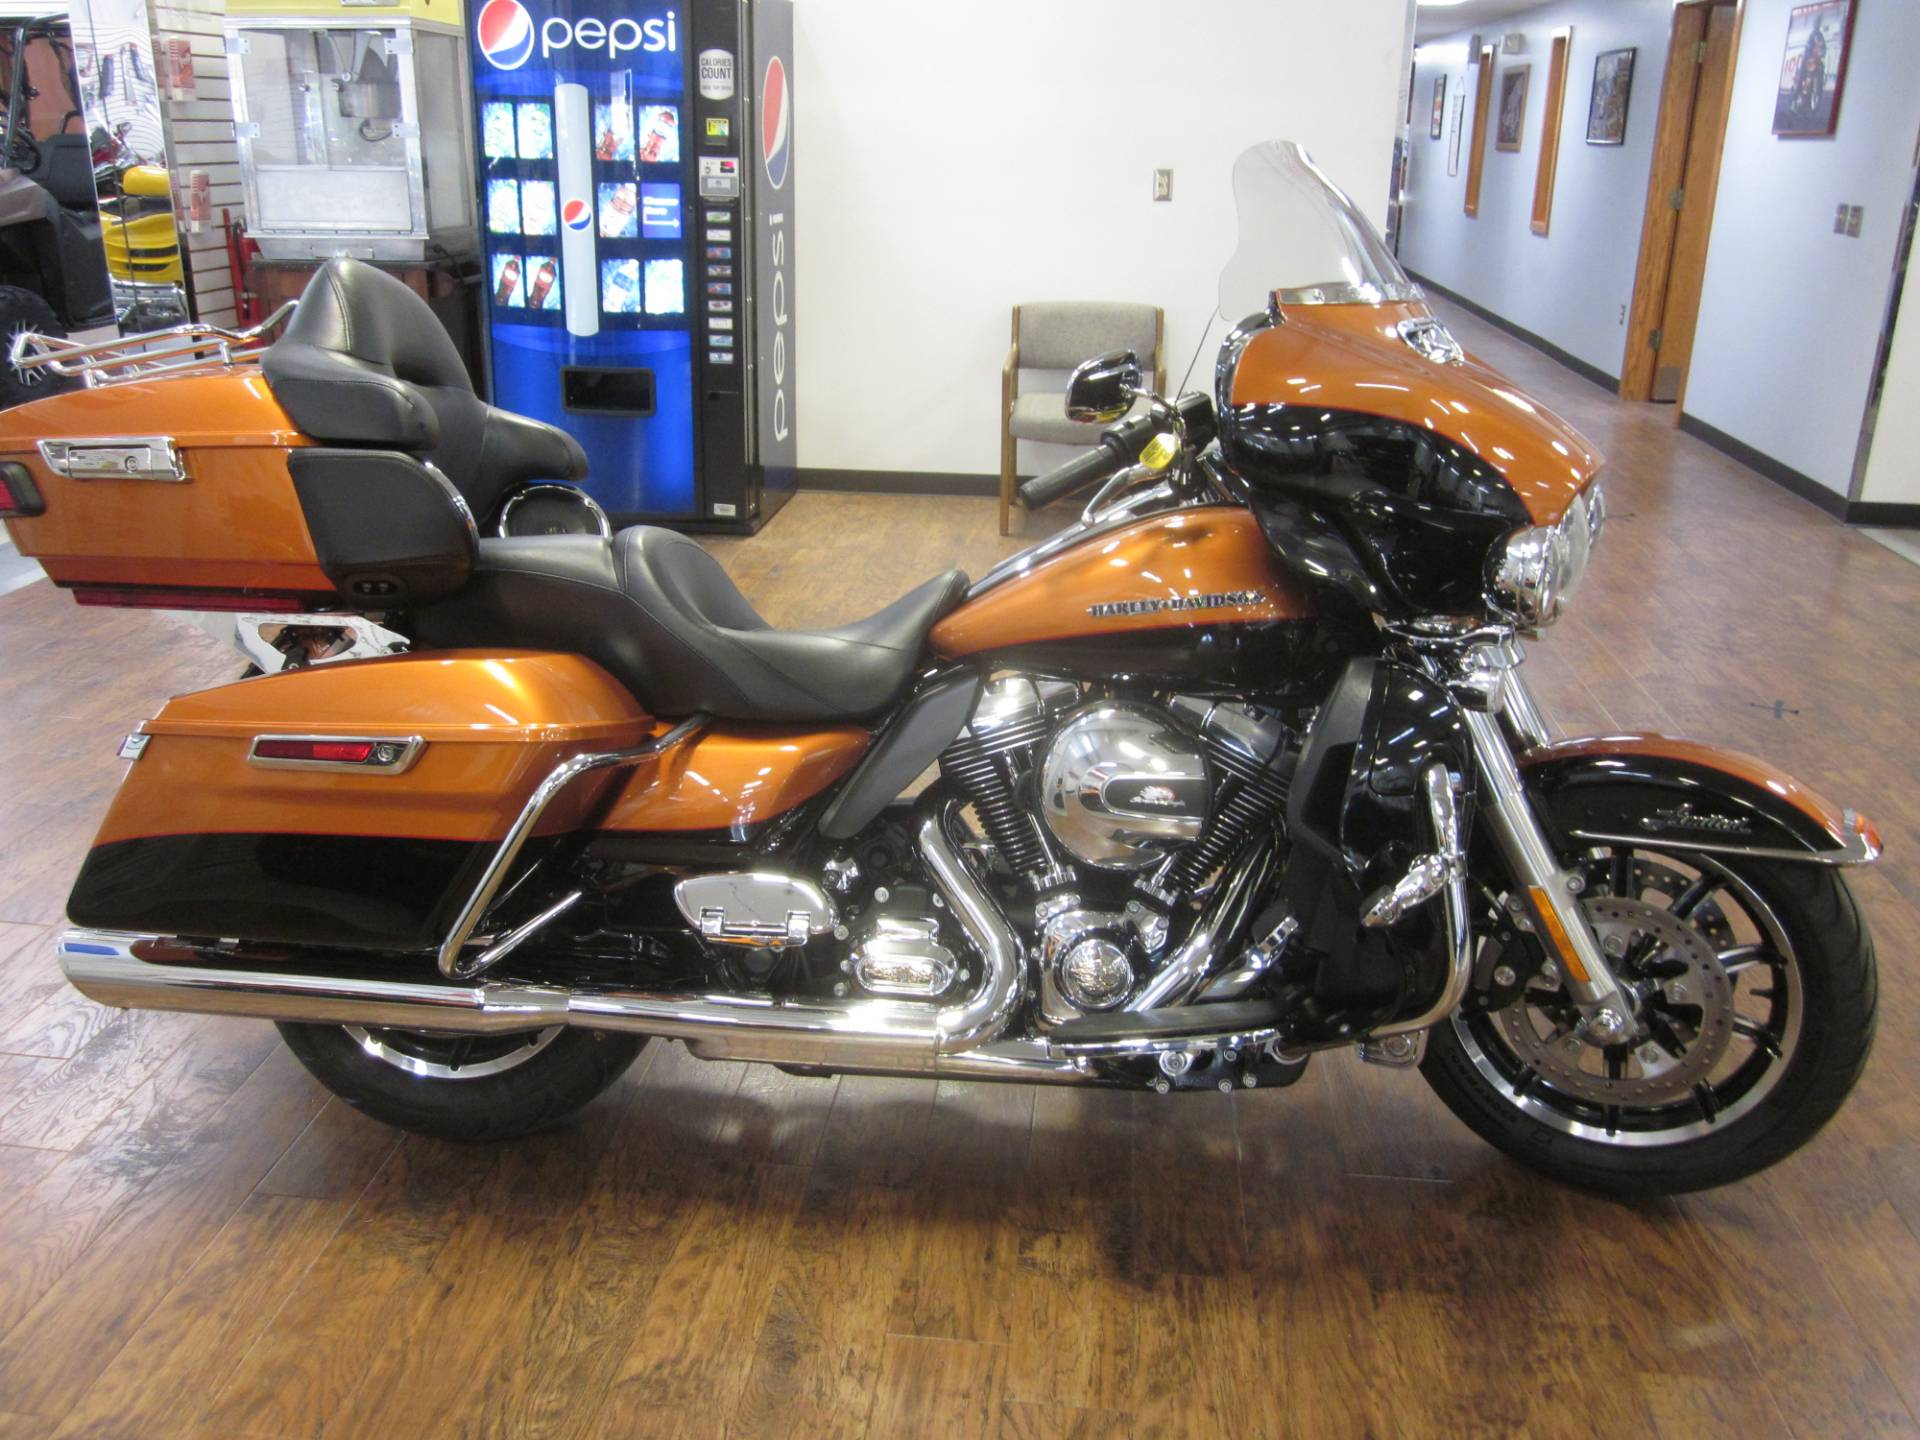 2014 Harley Davidson Ultra Limited in Lima, Ohio - Photo 2